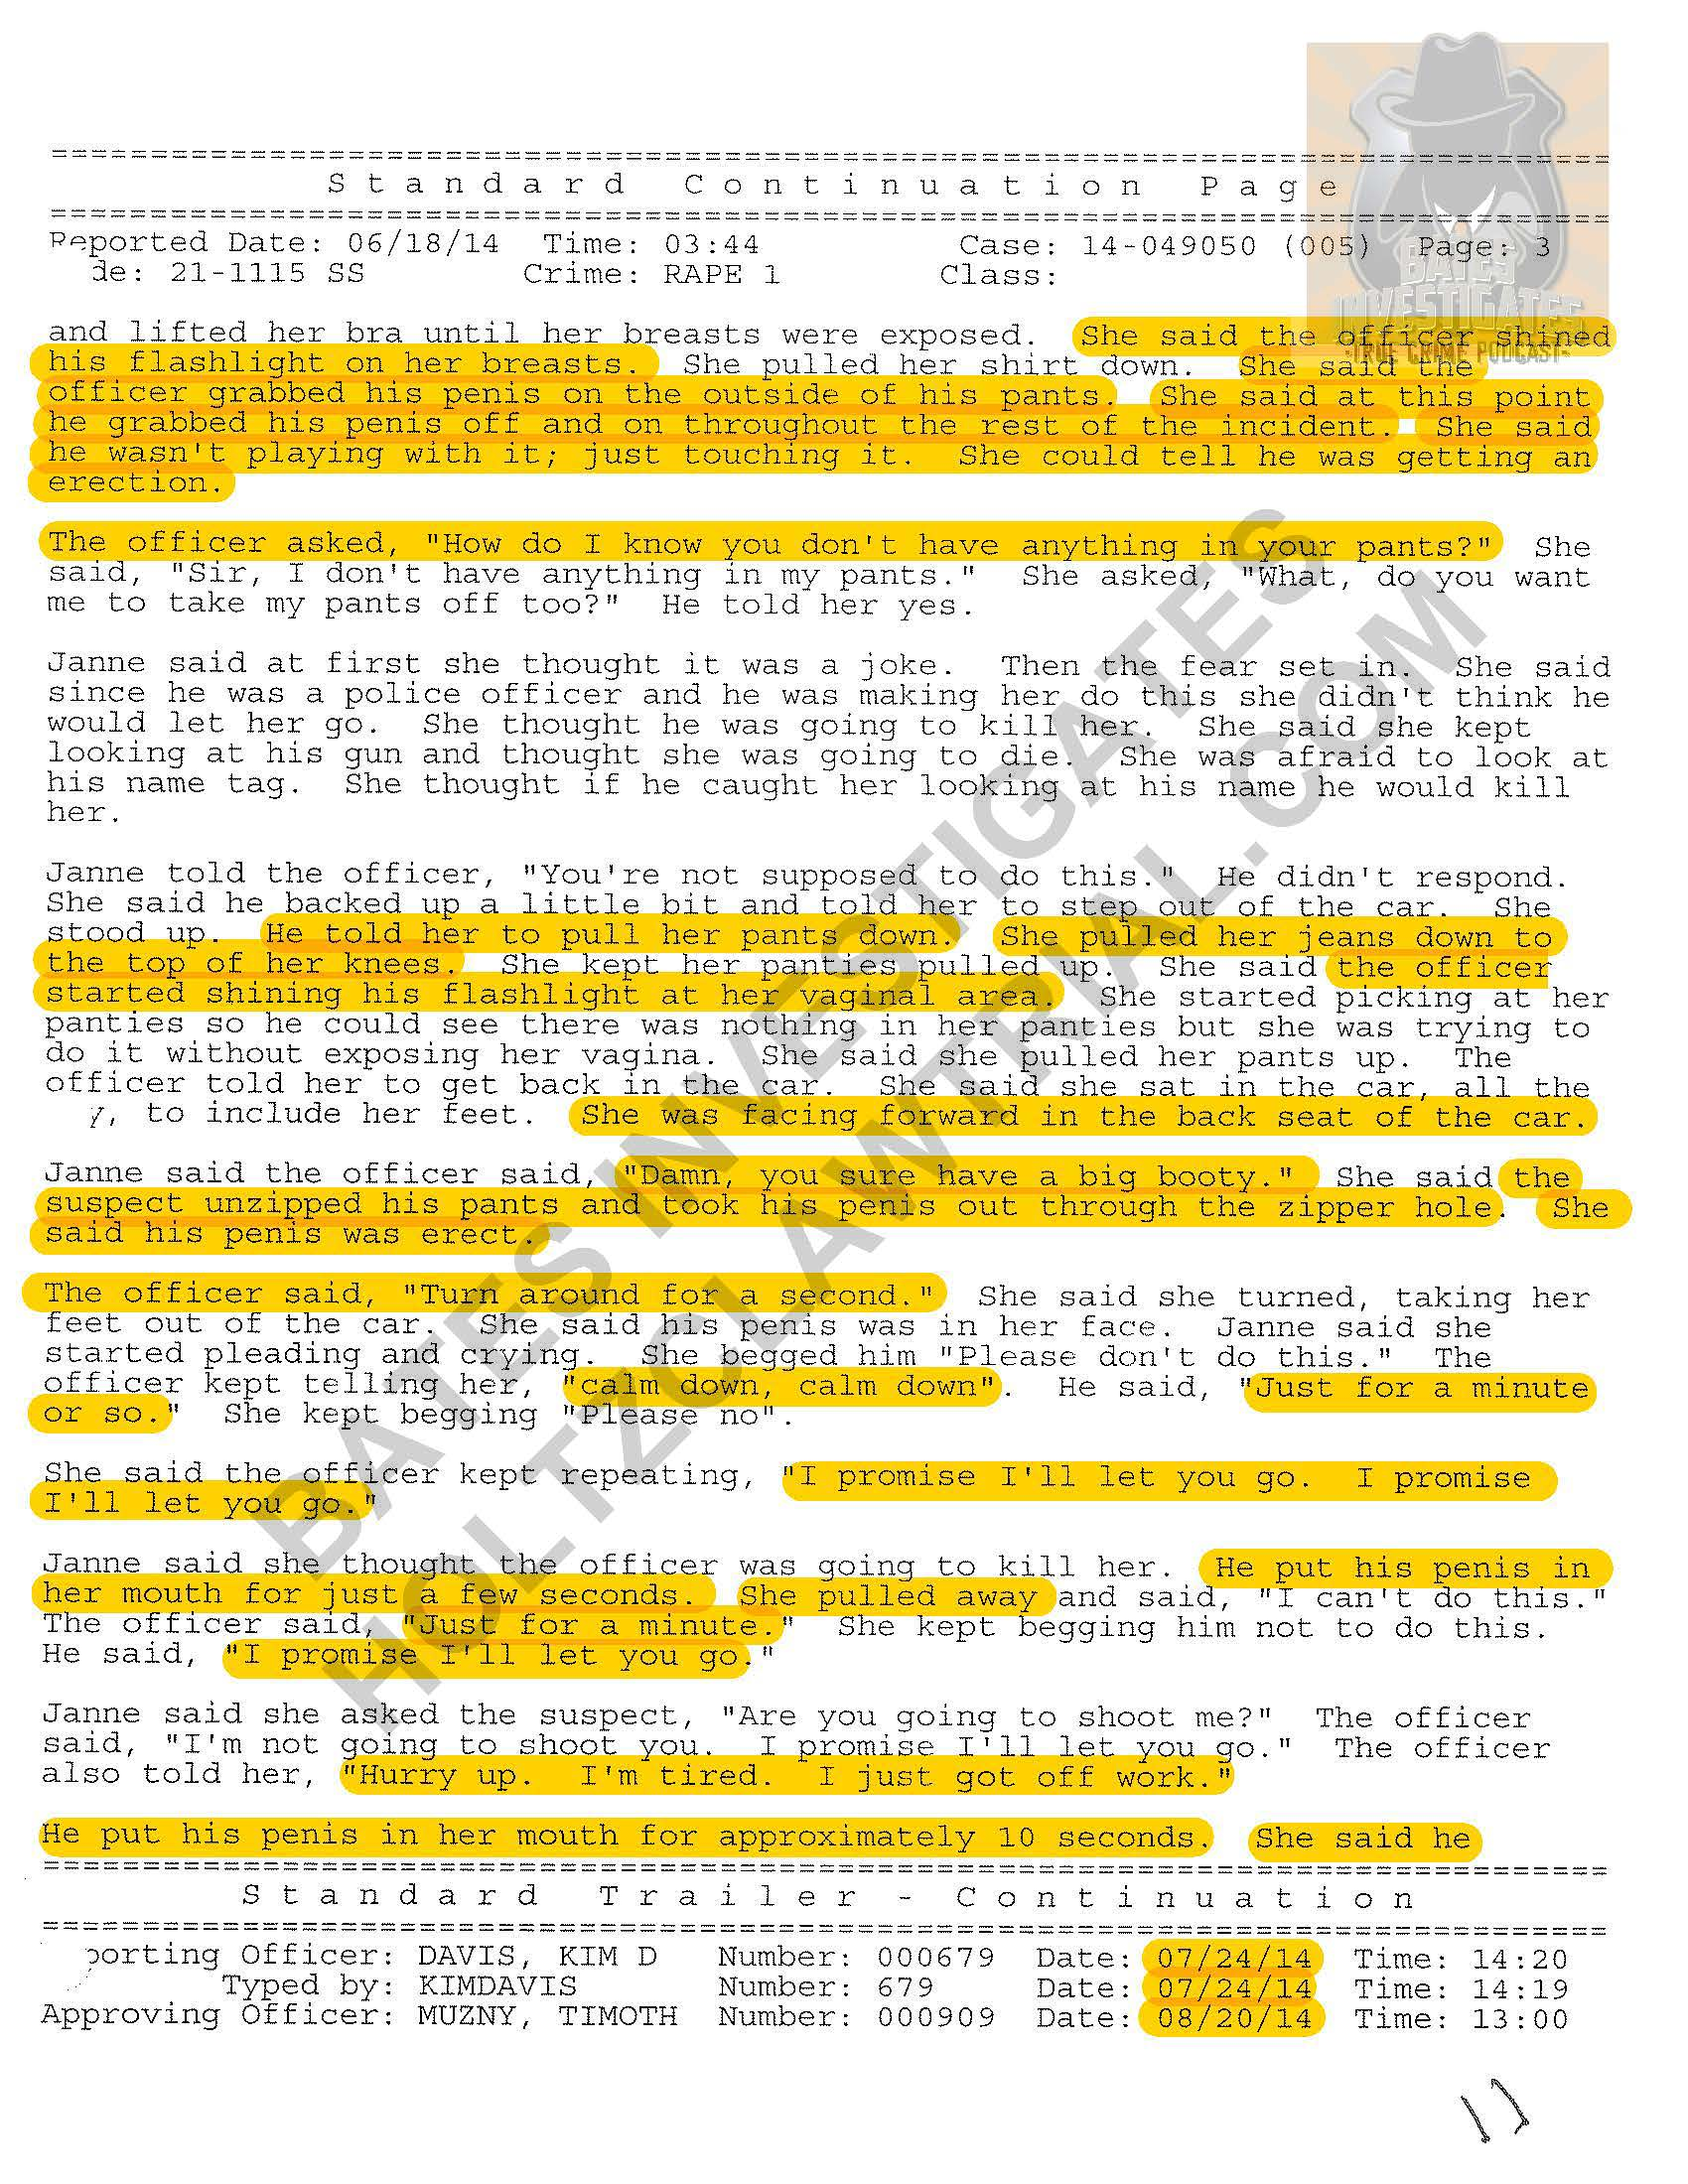 Holtzclaw - Ep02 - Police Reports Watermarked_Page_21.jpg